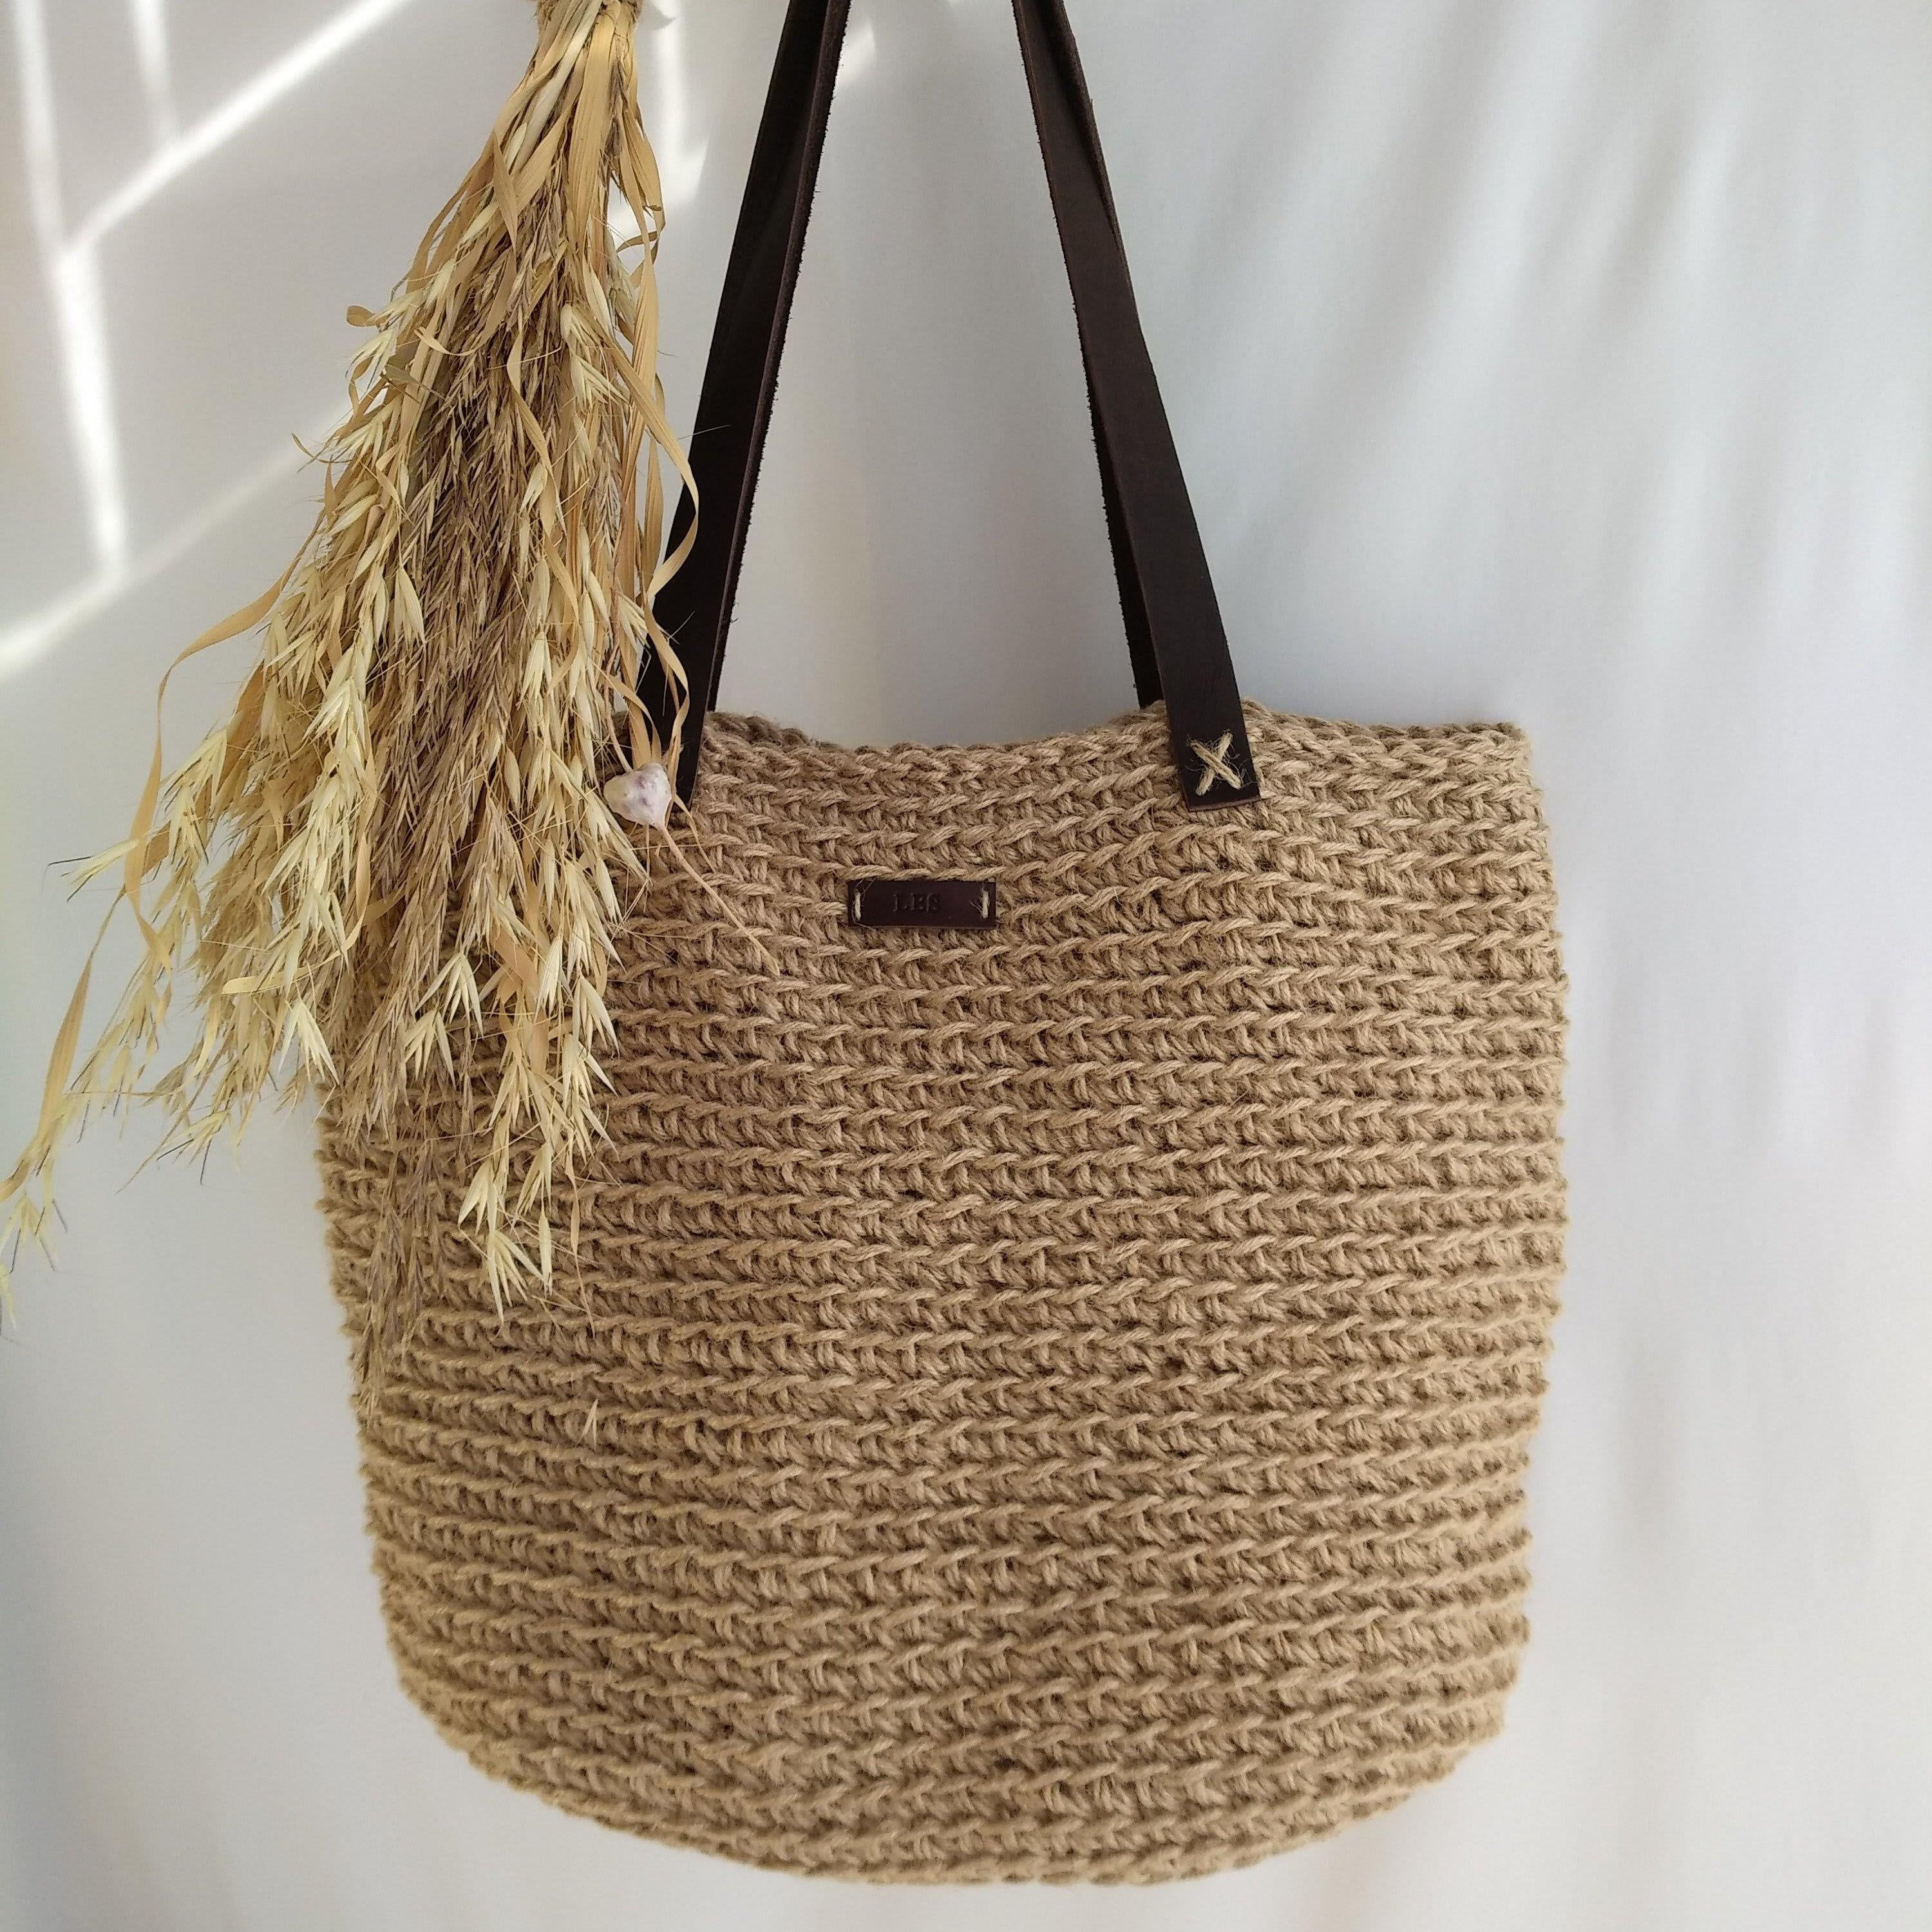 Jute bag with leather handle Market Crochet Jute Bag Jute shopping bag Jute tote bag Casual bag natural color Casual bag Gift for her